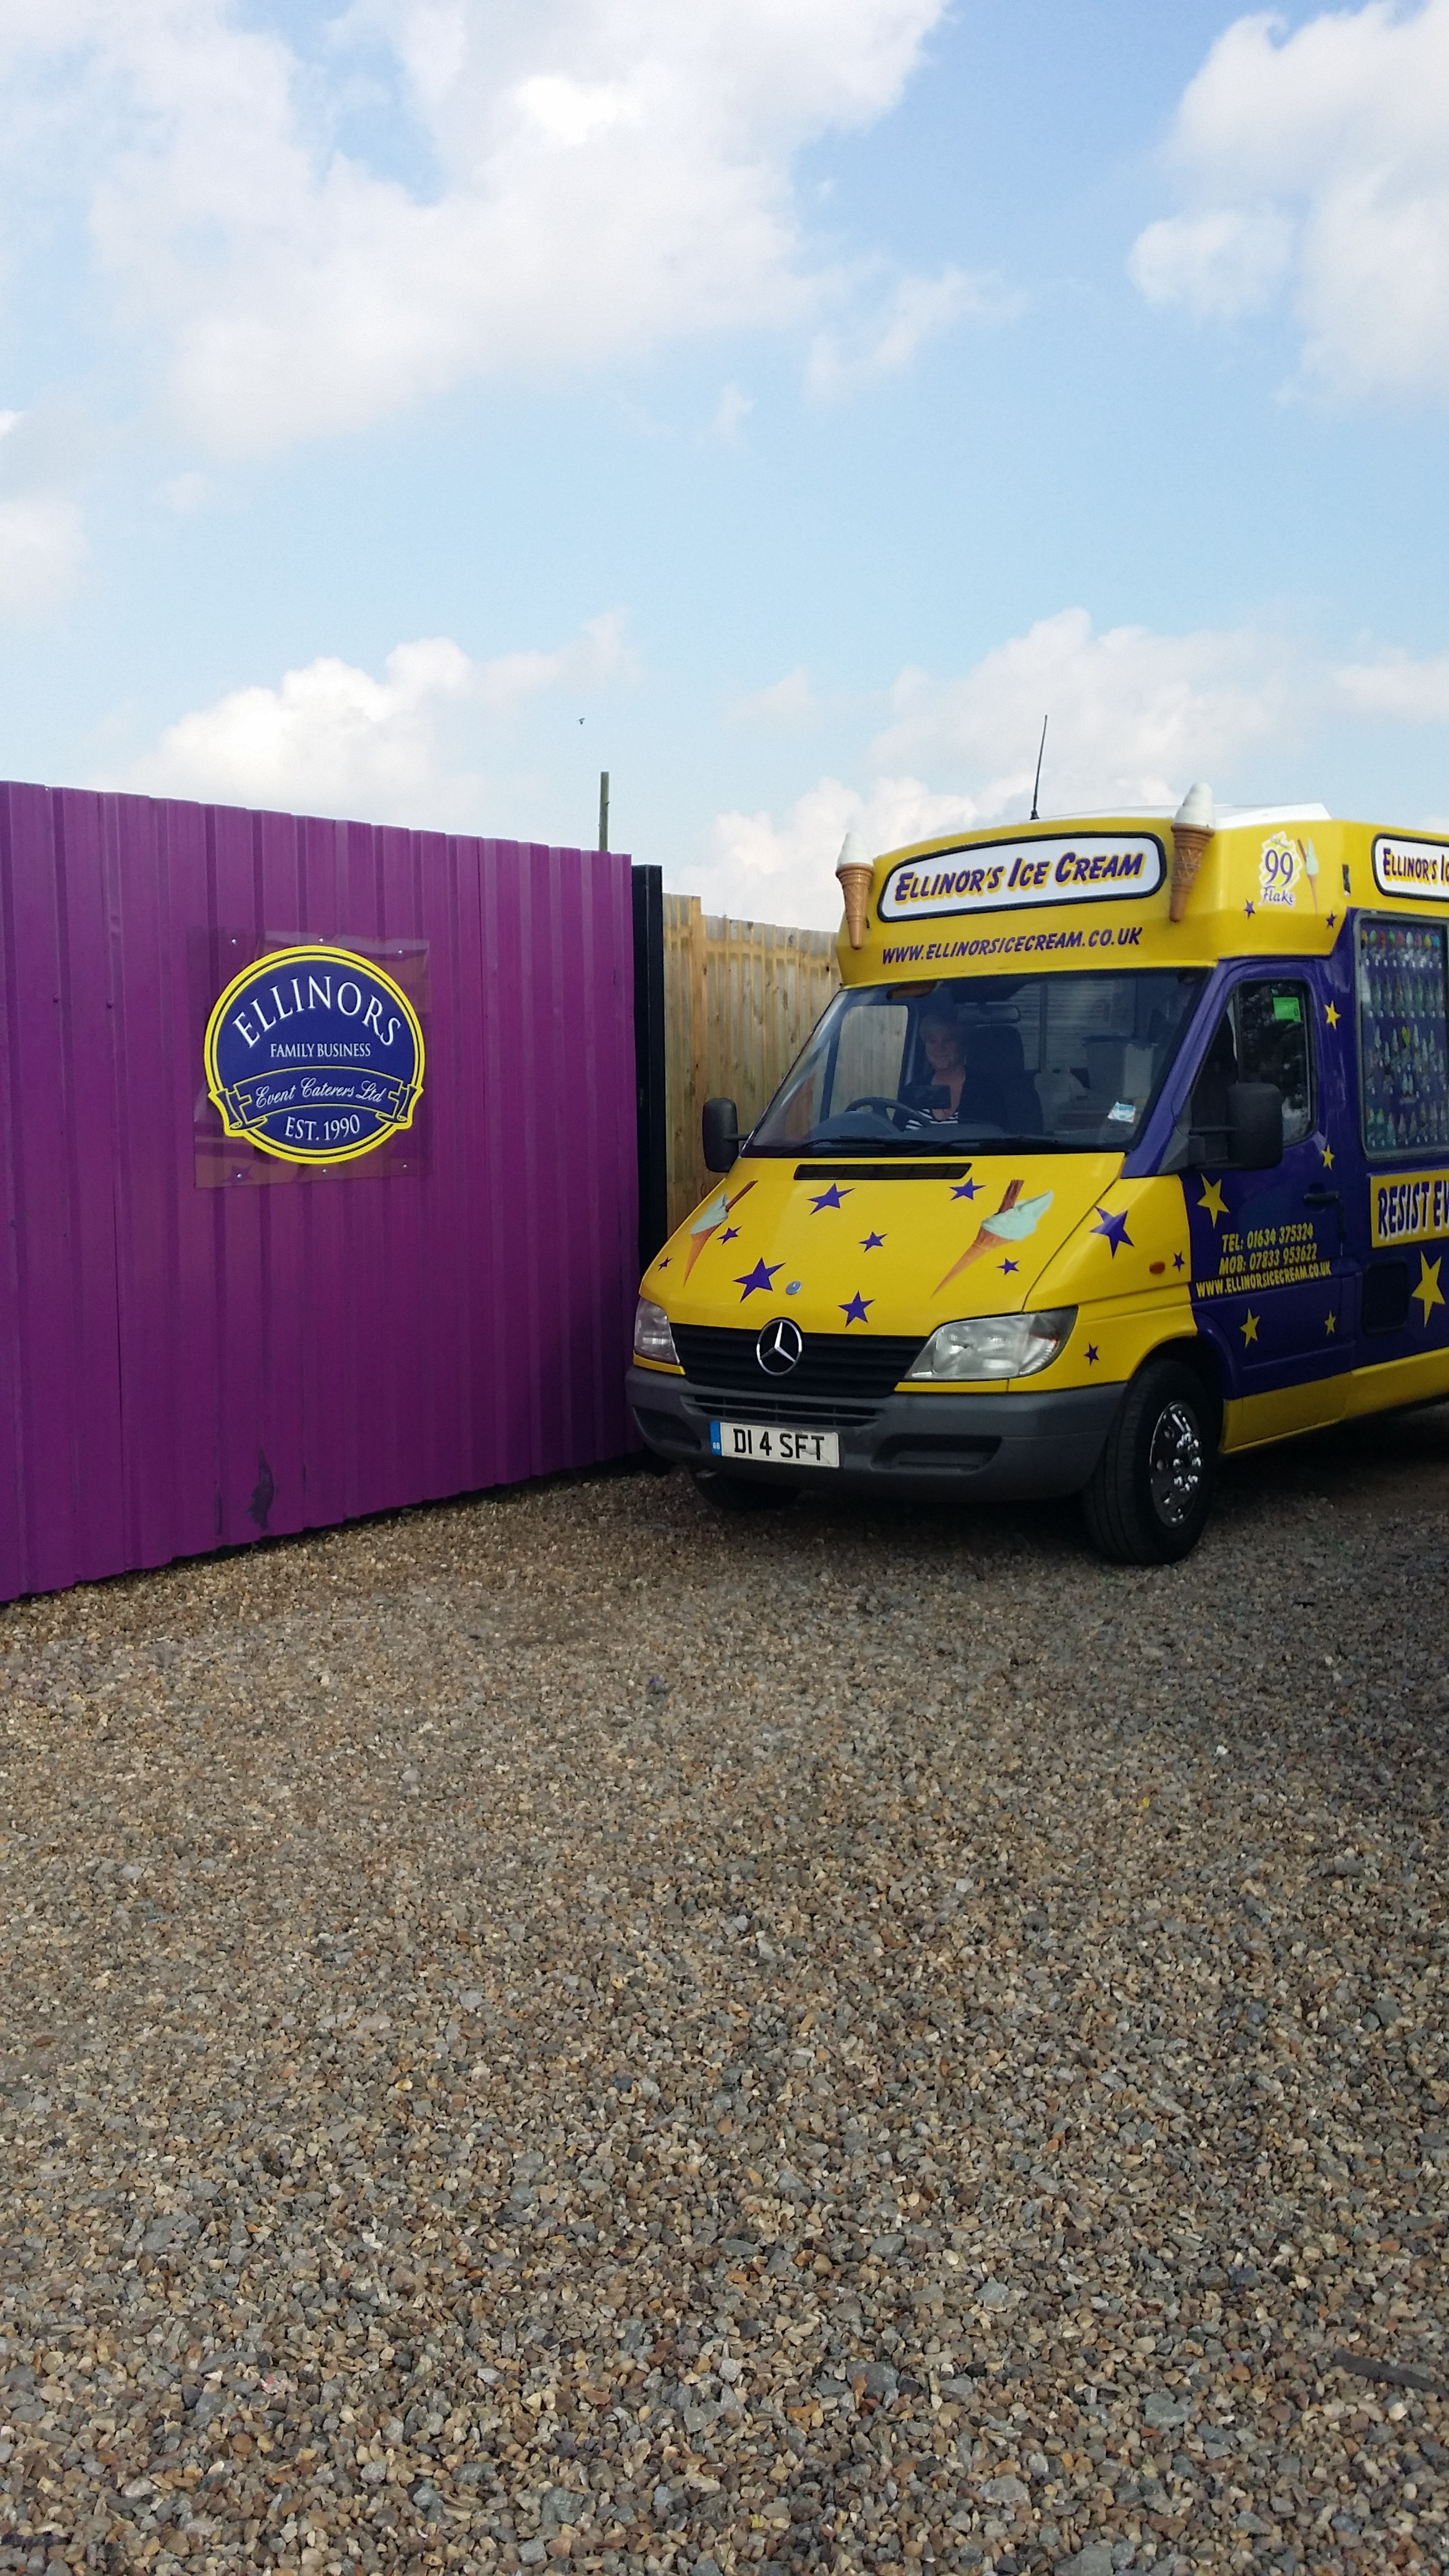 6c3a549a43a9 Ellinors Ice Cream Vans Announce Move to New Office and Catering Depot »  office4